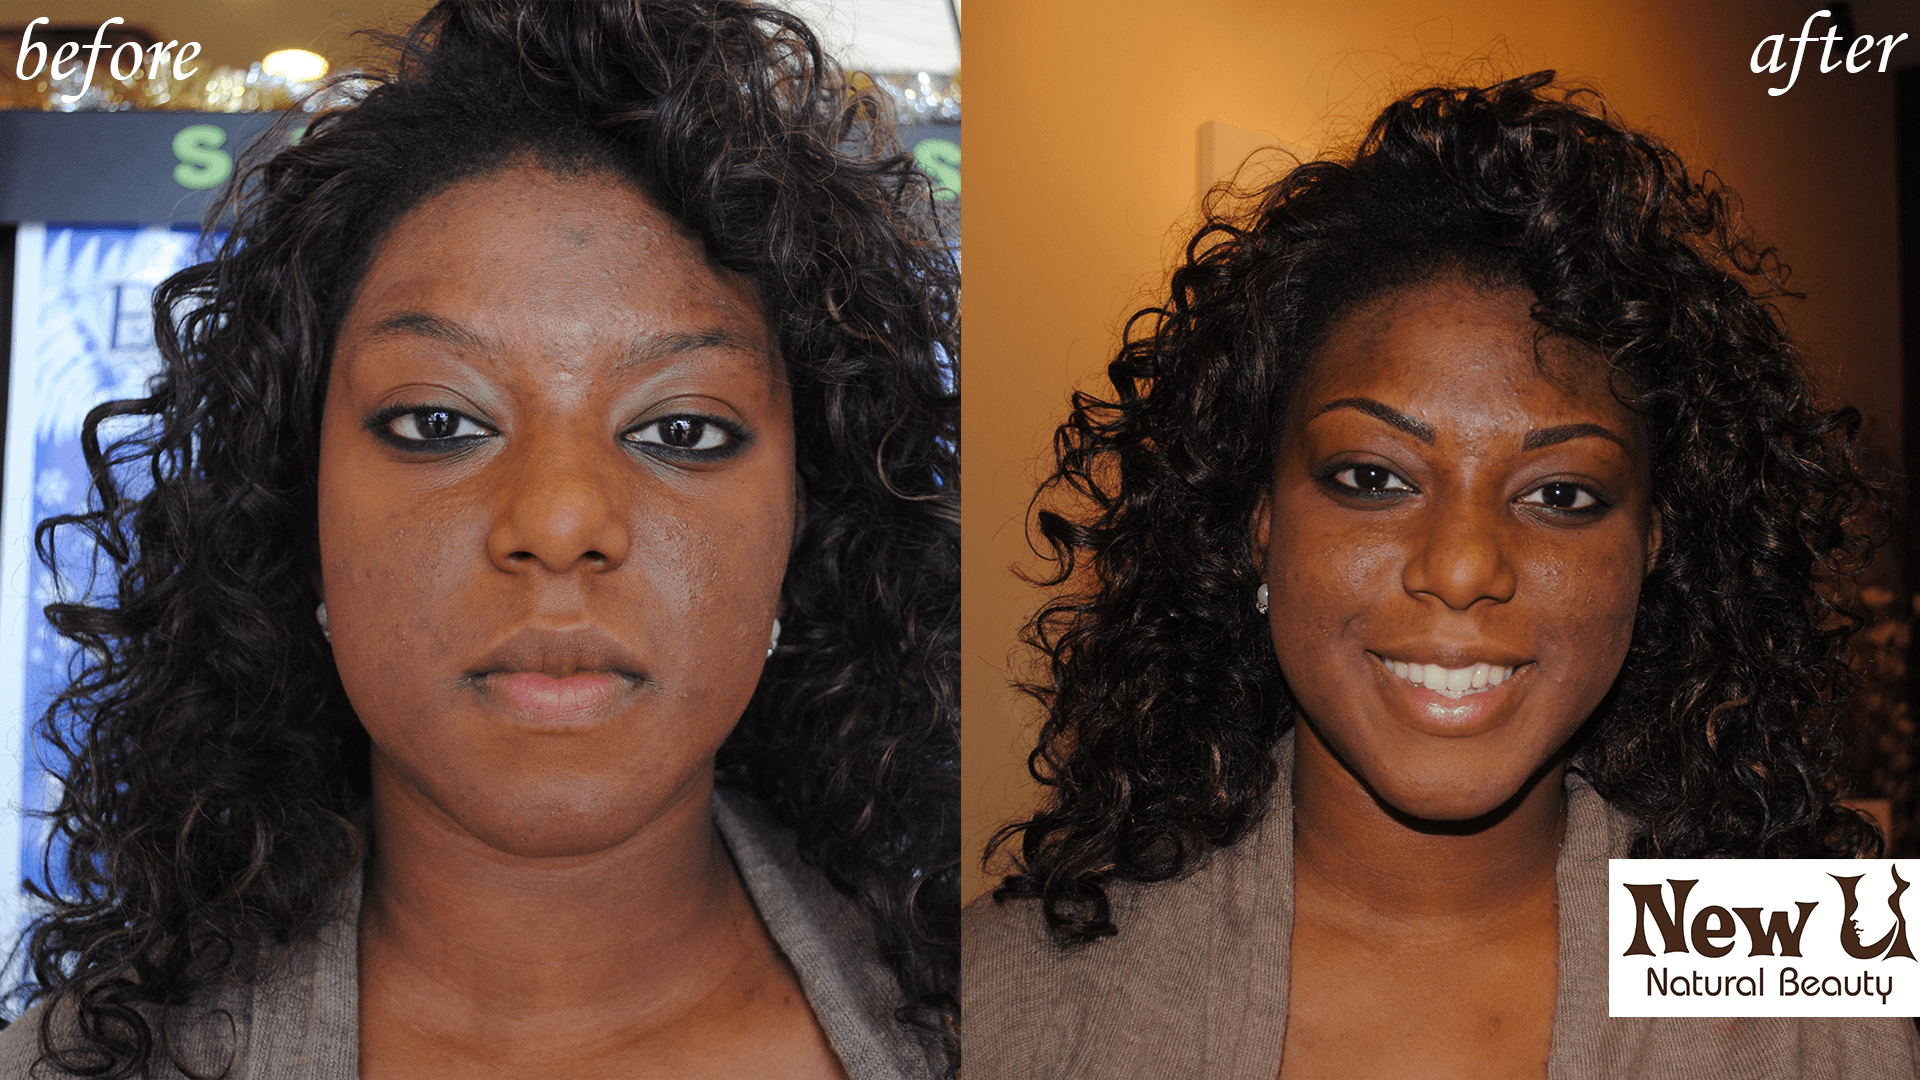 Permanent Makeup 2 Las Vegas Before and After